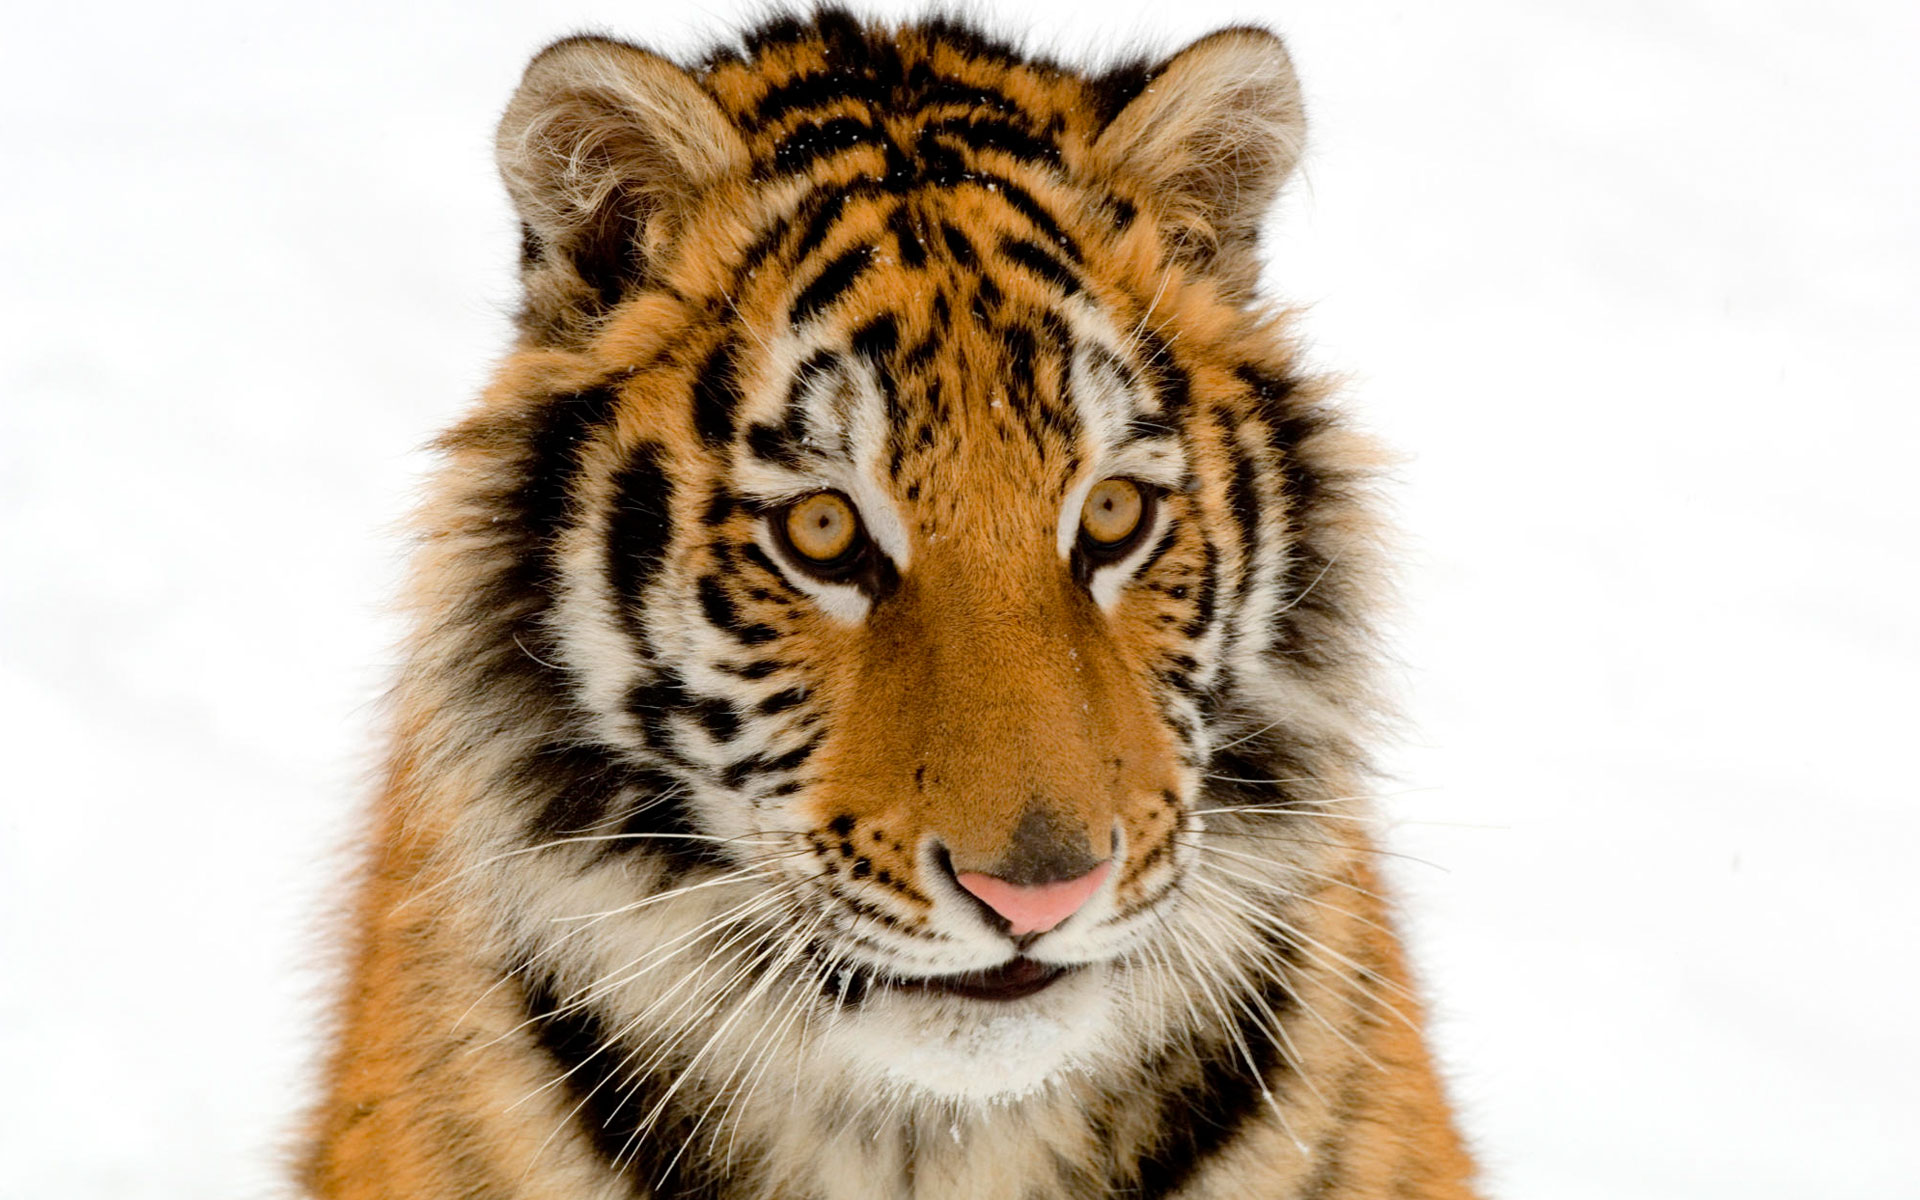 Portrait of a Tiger Wallpapers HD Wallpapers 1920x1200